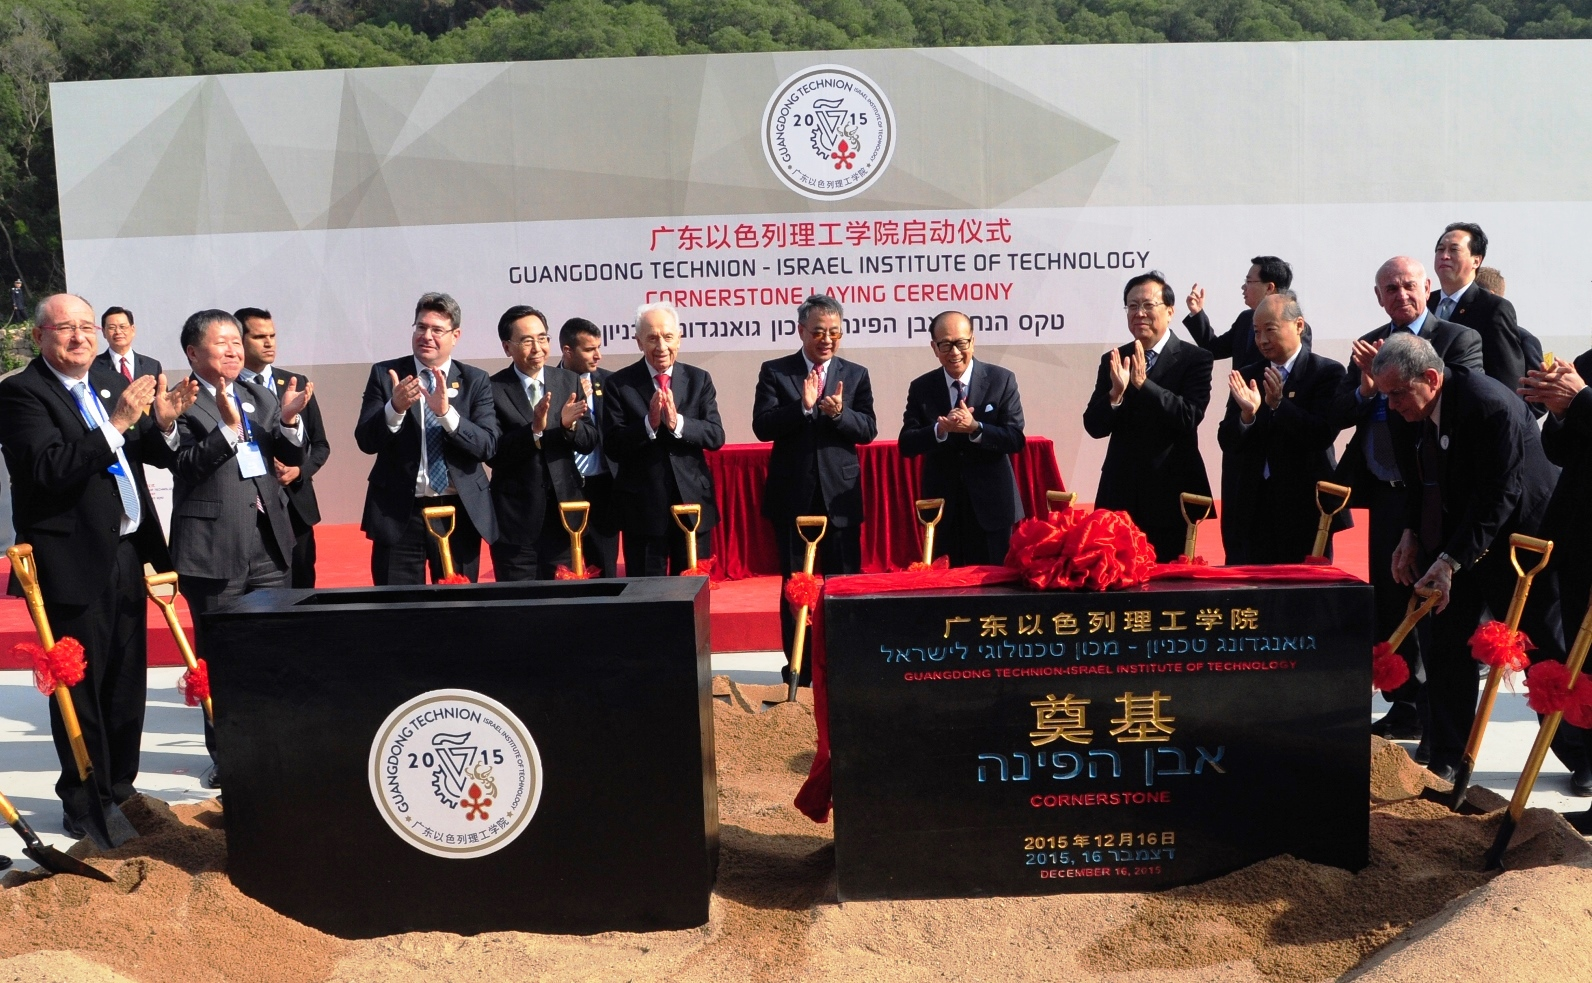 Technion : Groundbreaking of Guangdong Technion Israel Institute of Technology (photo Israel21C)